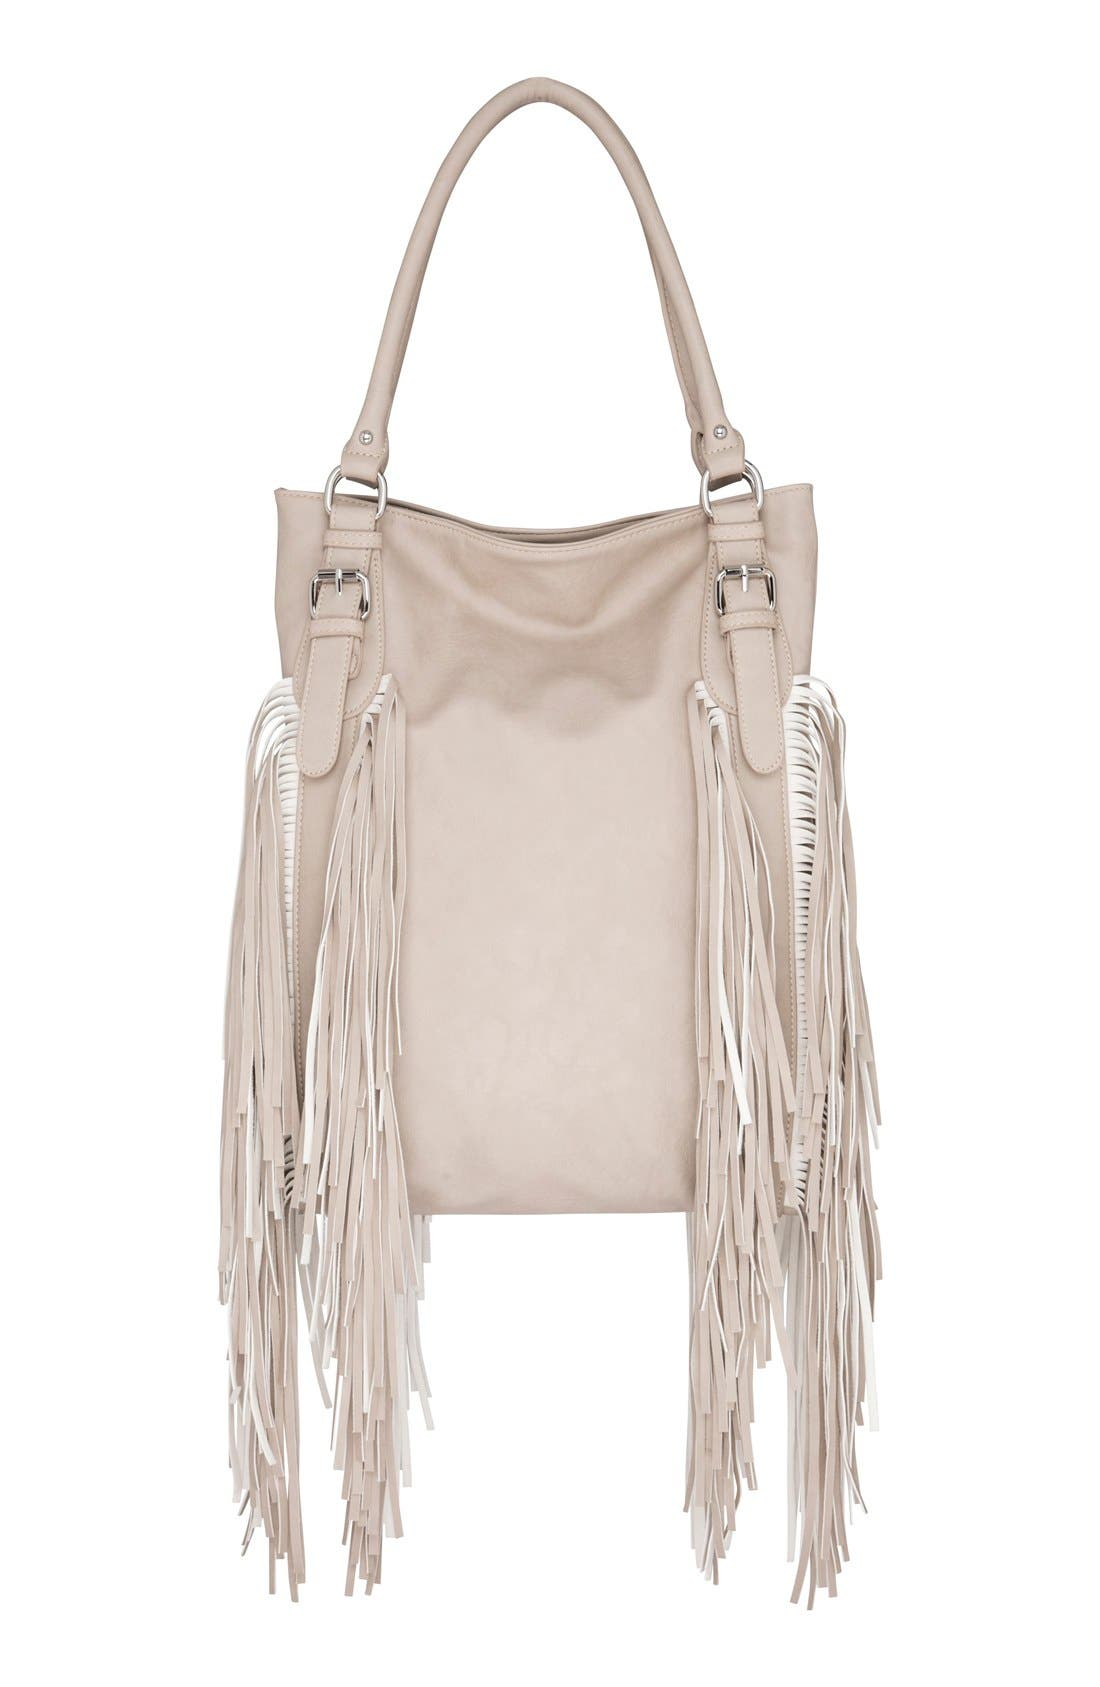 Alternate Image 1 Selected - Urban Originals 'Crazyheart' Fringe Faux Leather Tote